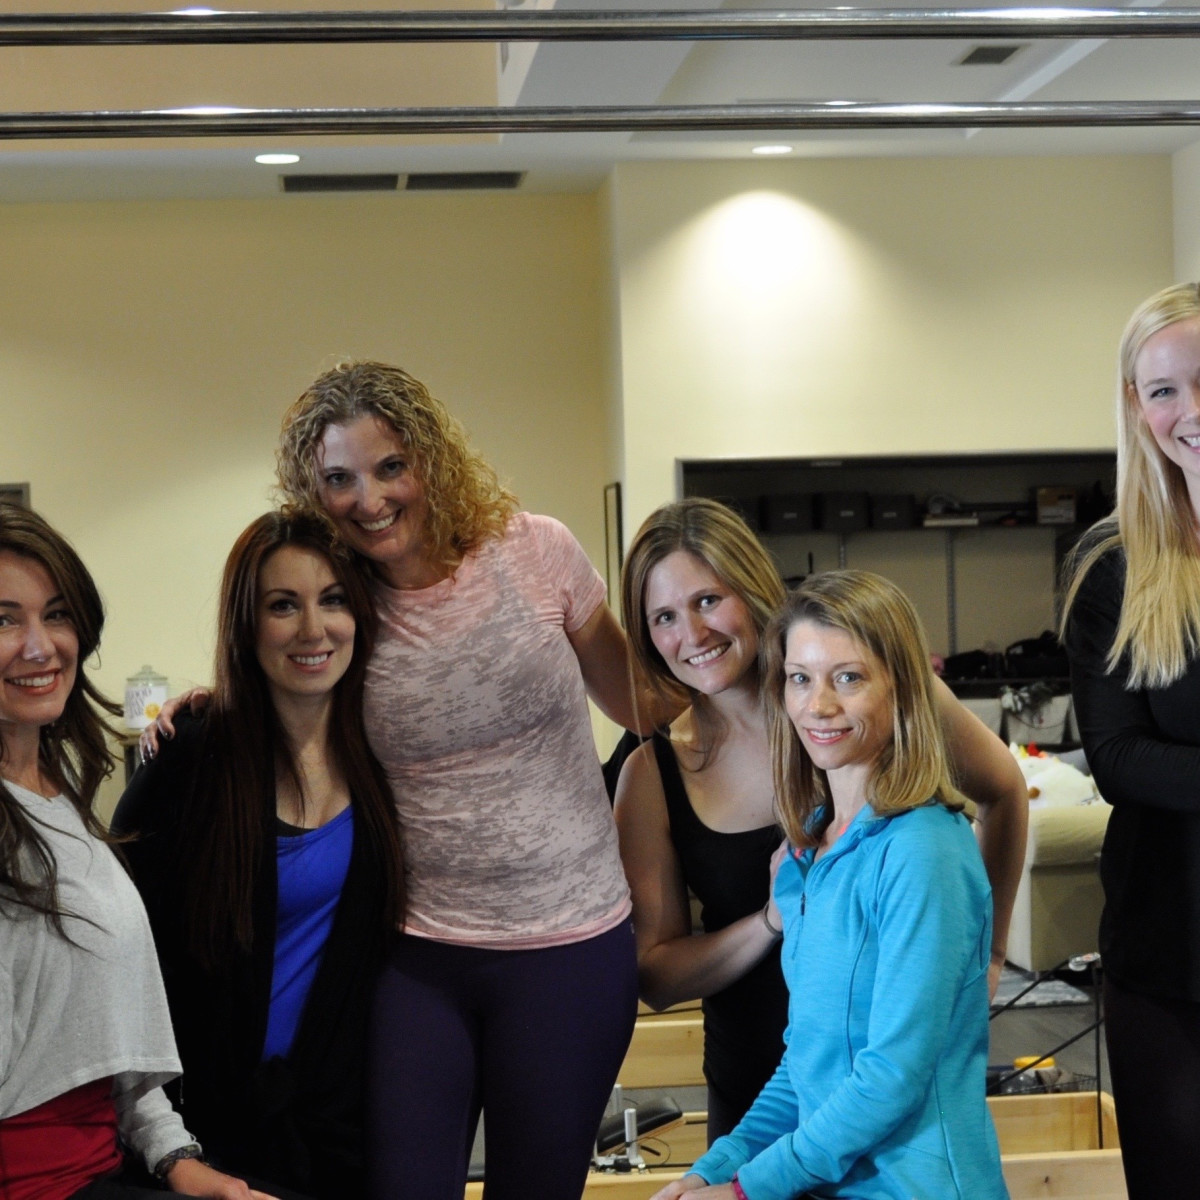 Washington Ave Pilates staff cropped photo